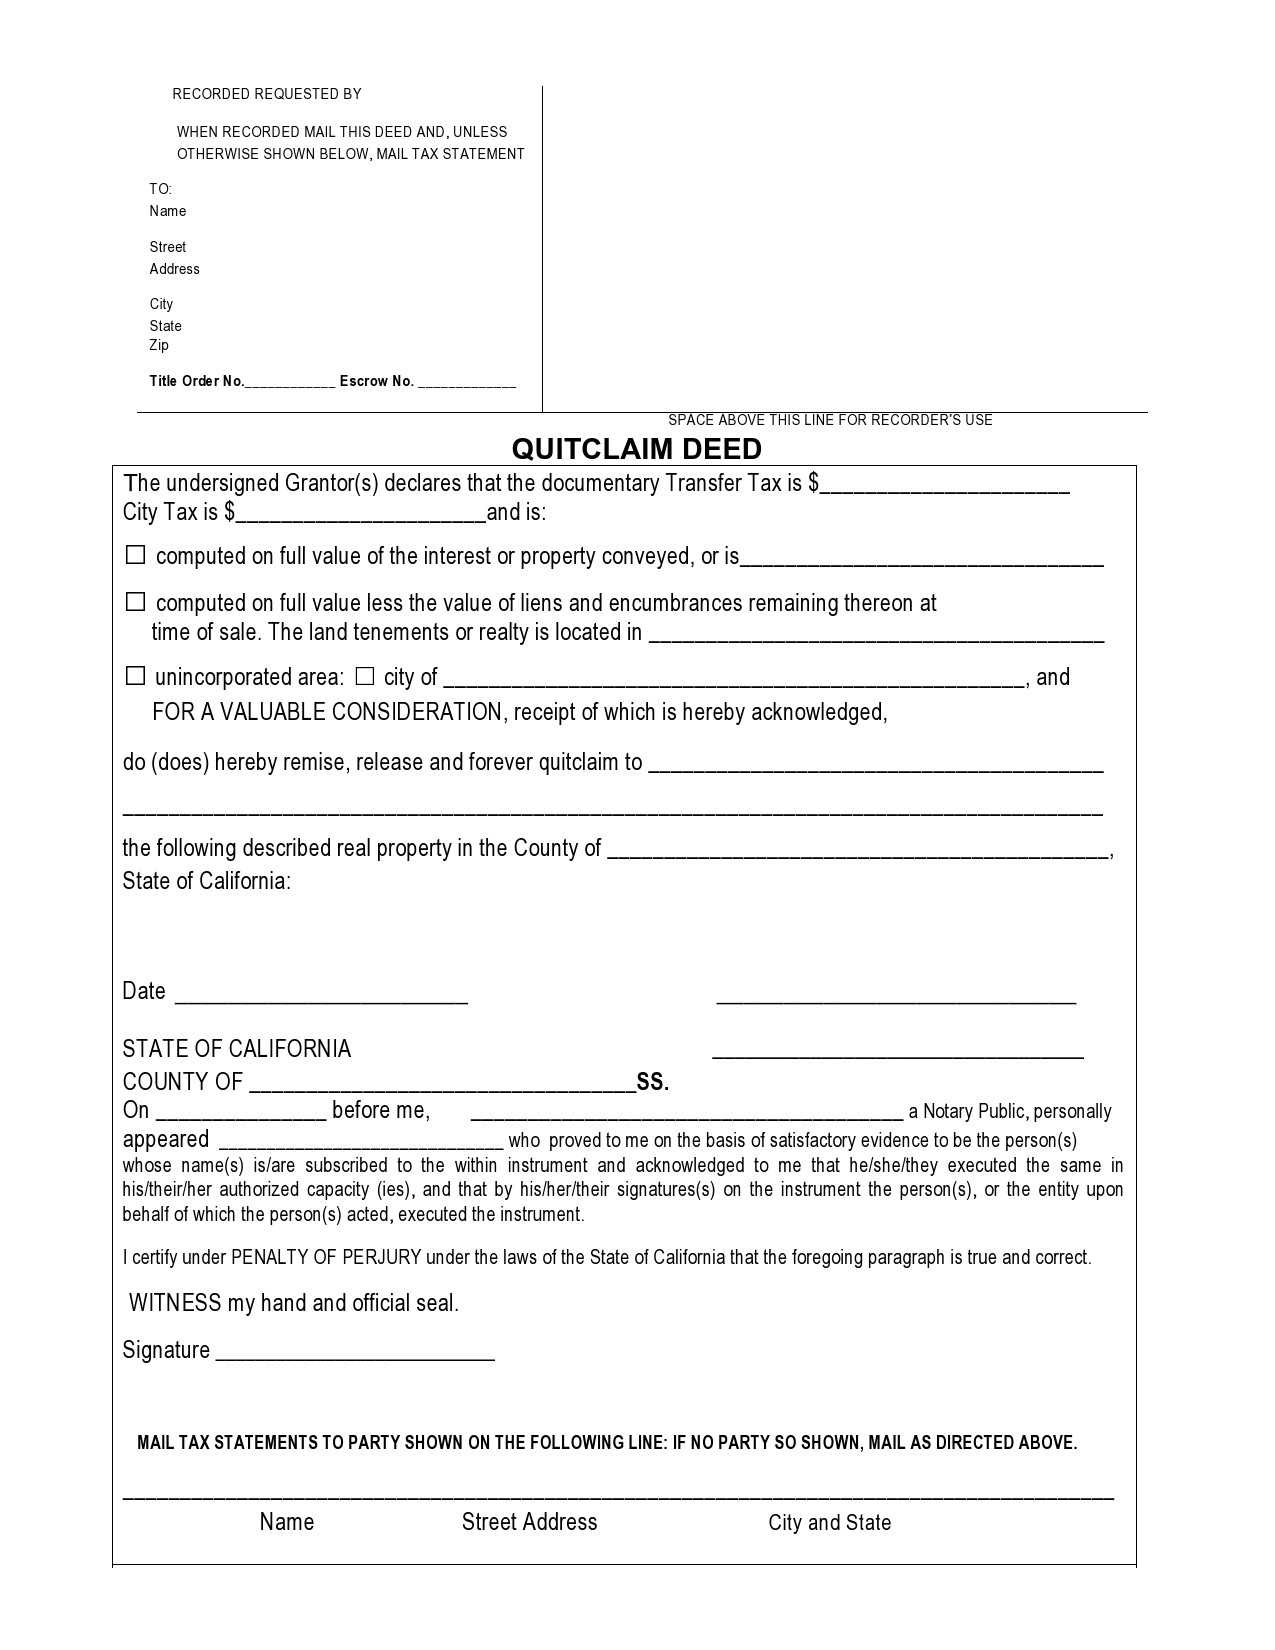 Free quit claim deed form 14